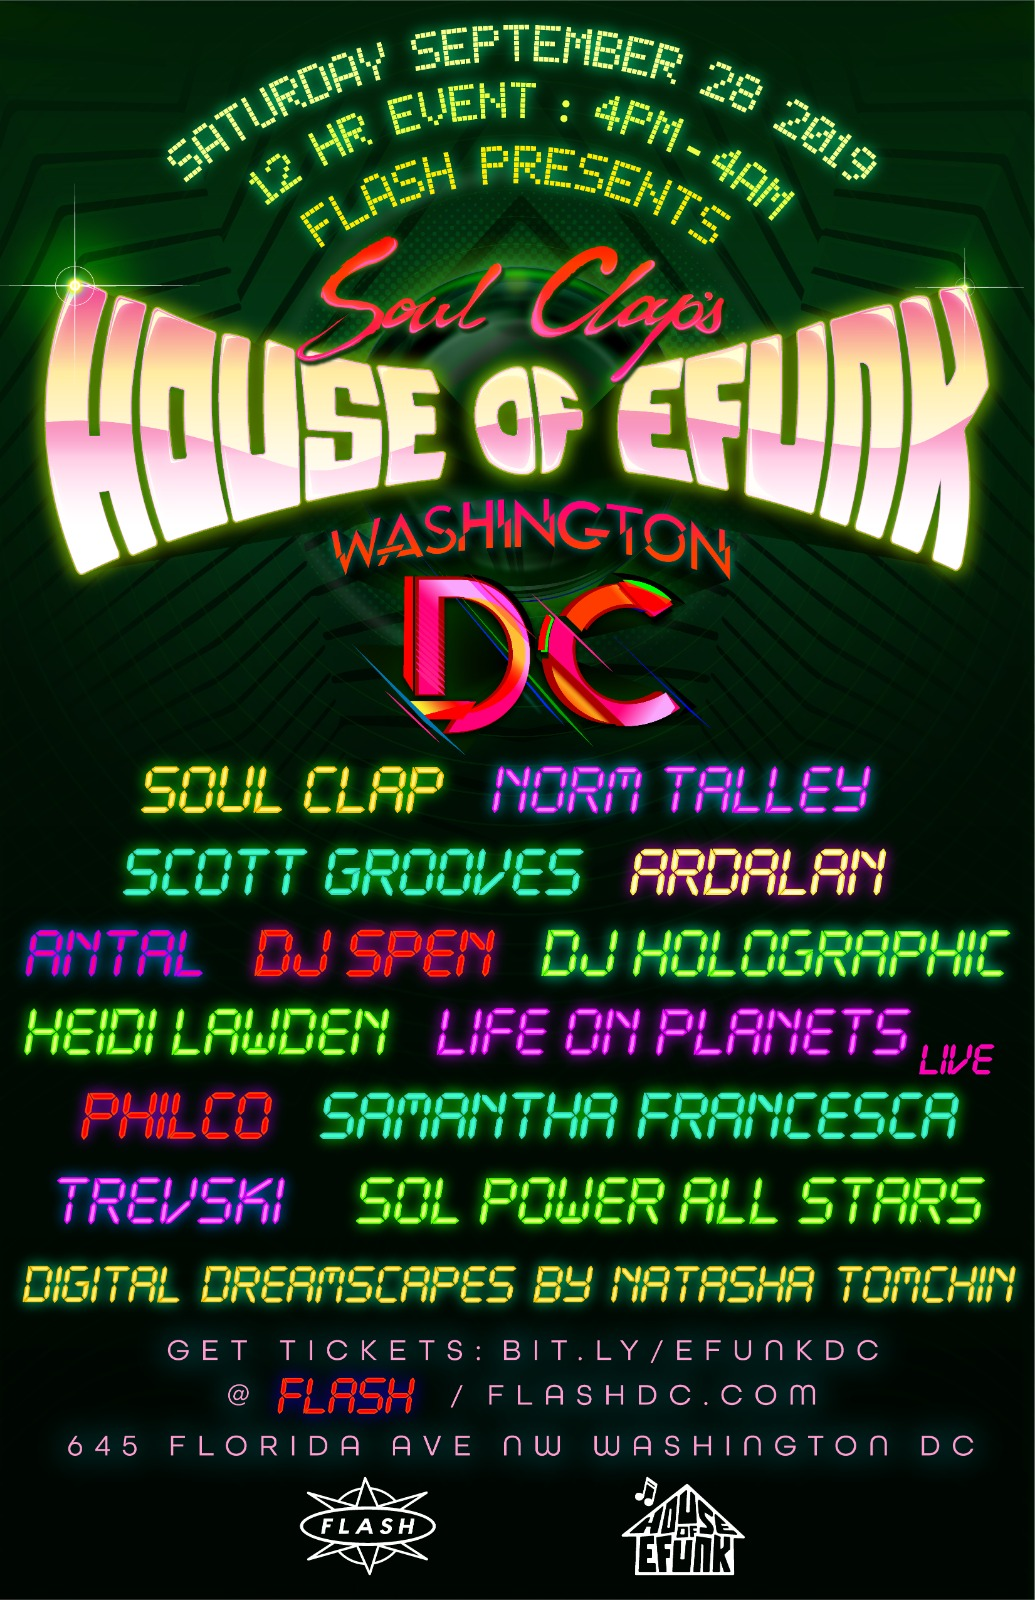 Soul Clap's House of Efunk DC event thumbnail